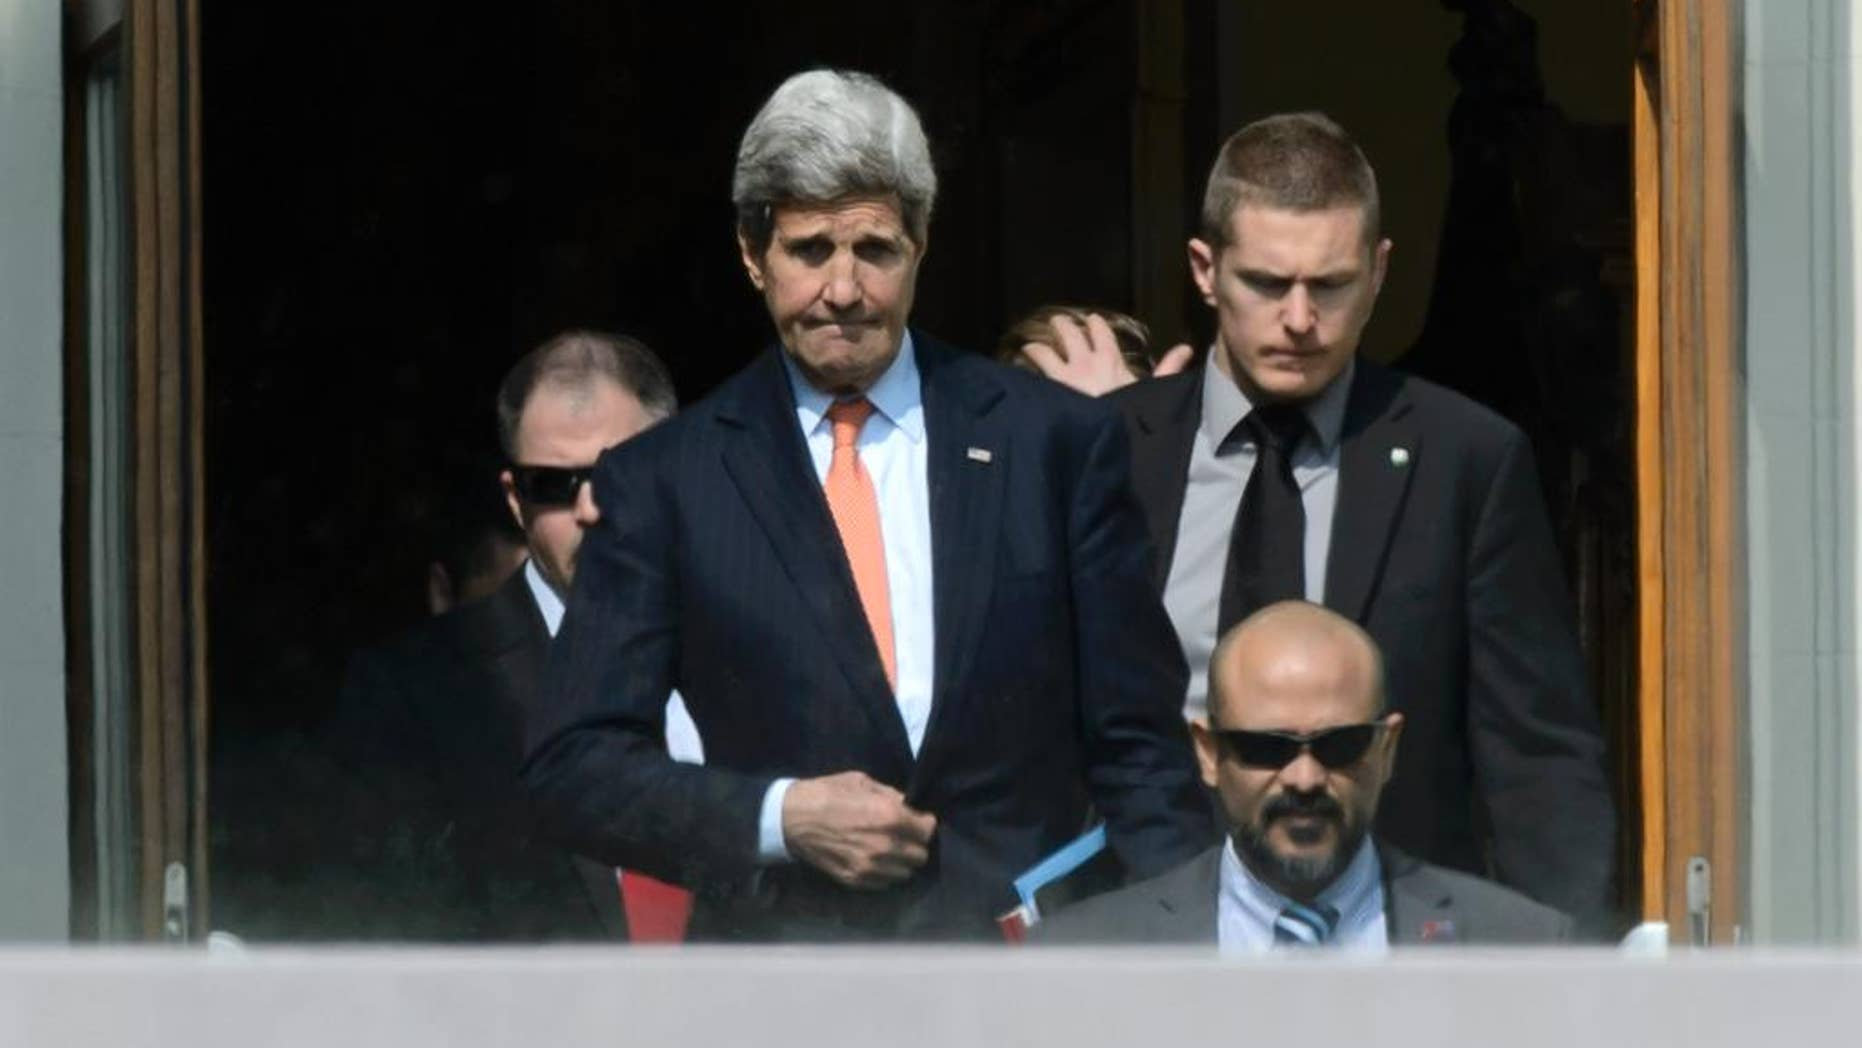 U.S. Secretary of State John Kerry, center, walks outside the hotel during a break from a bilateral meeting with Iranian Foreign Minister Mohammad Javad Zarif for a new round of Nuclear Talks, in Lausanne, Switzerland, Thursday, March 19, 2015.  (AP Photo/Keystone,Laurent Gillieron)